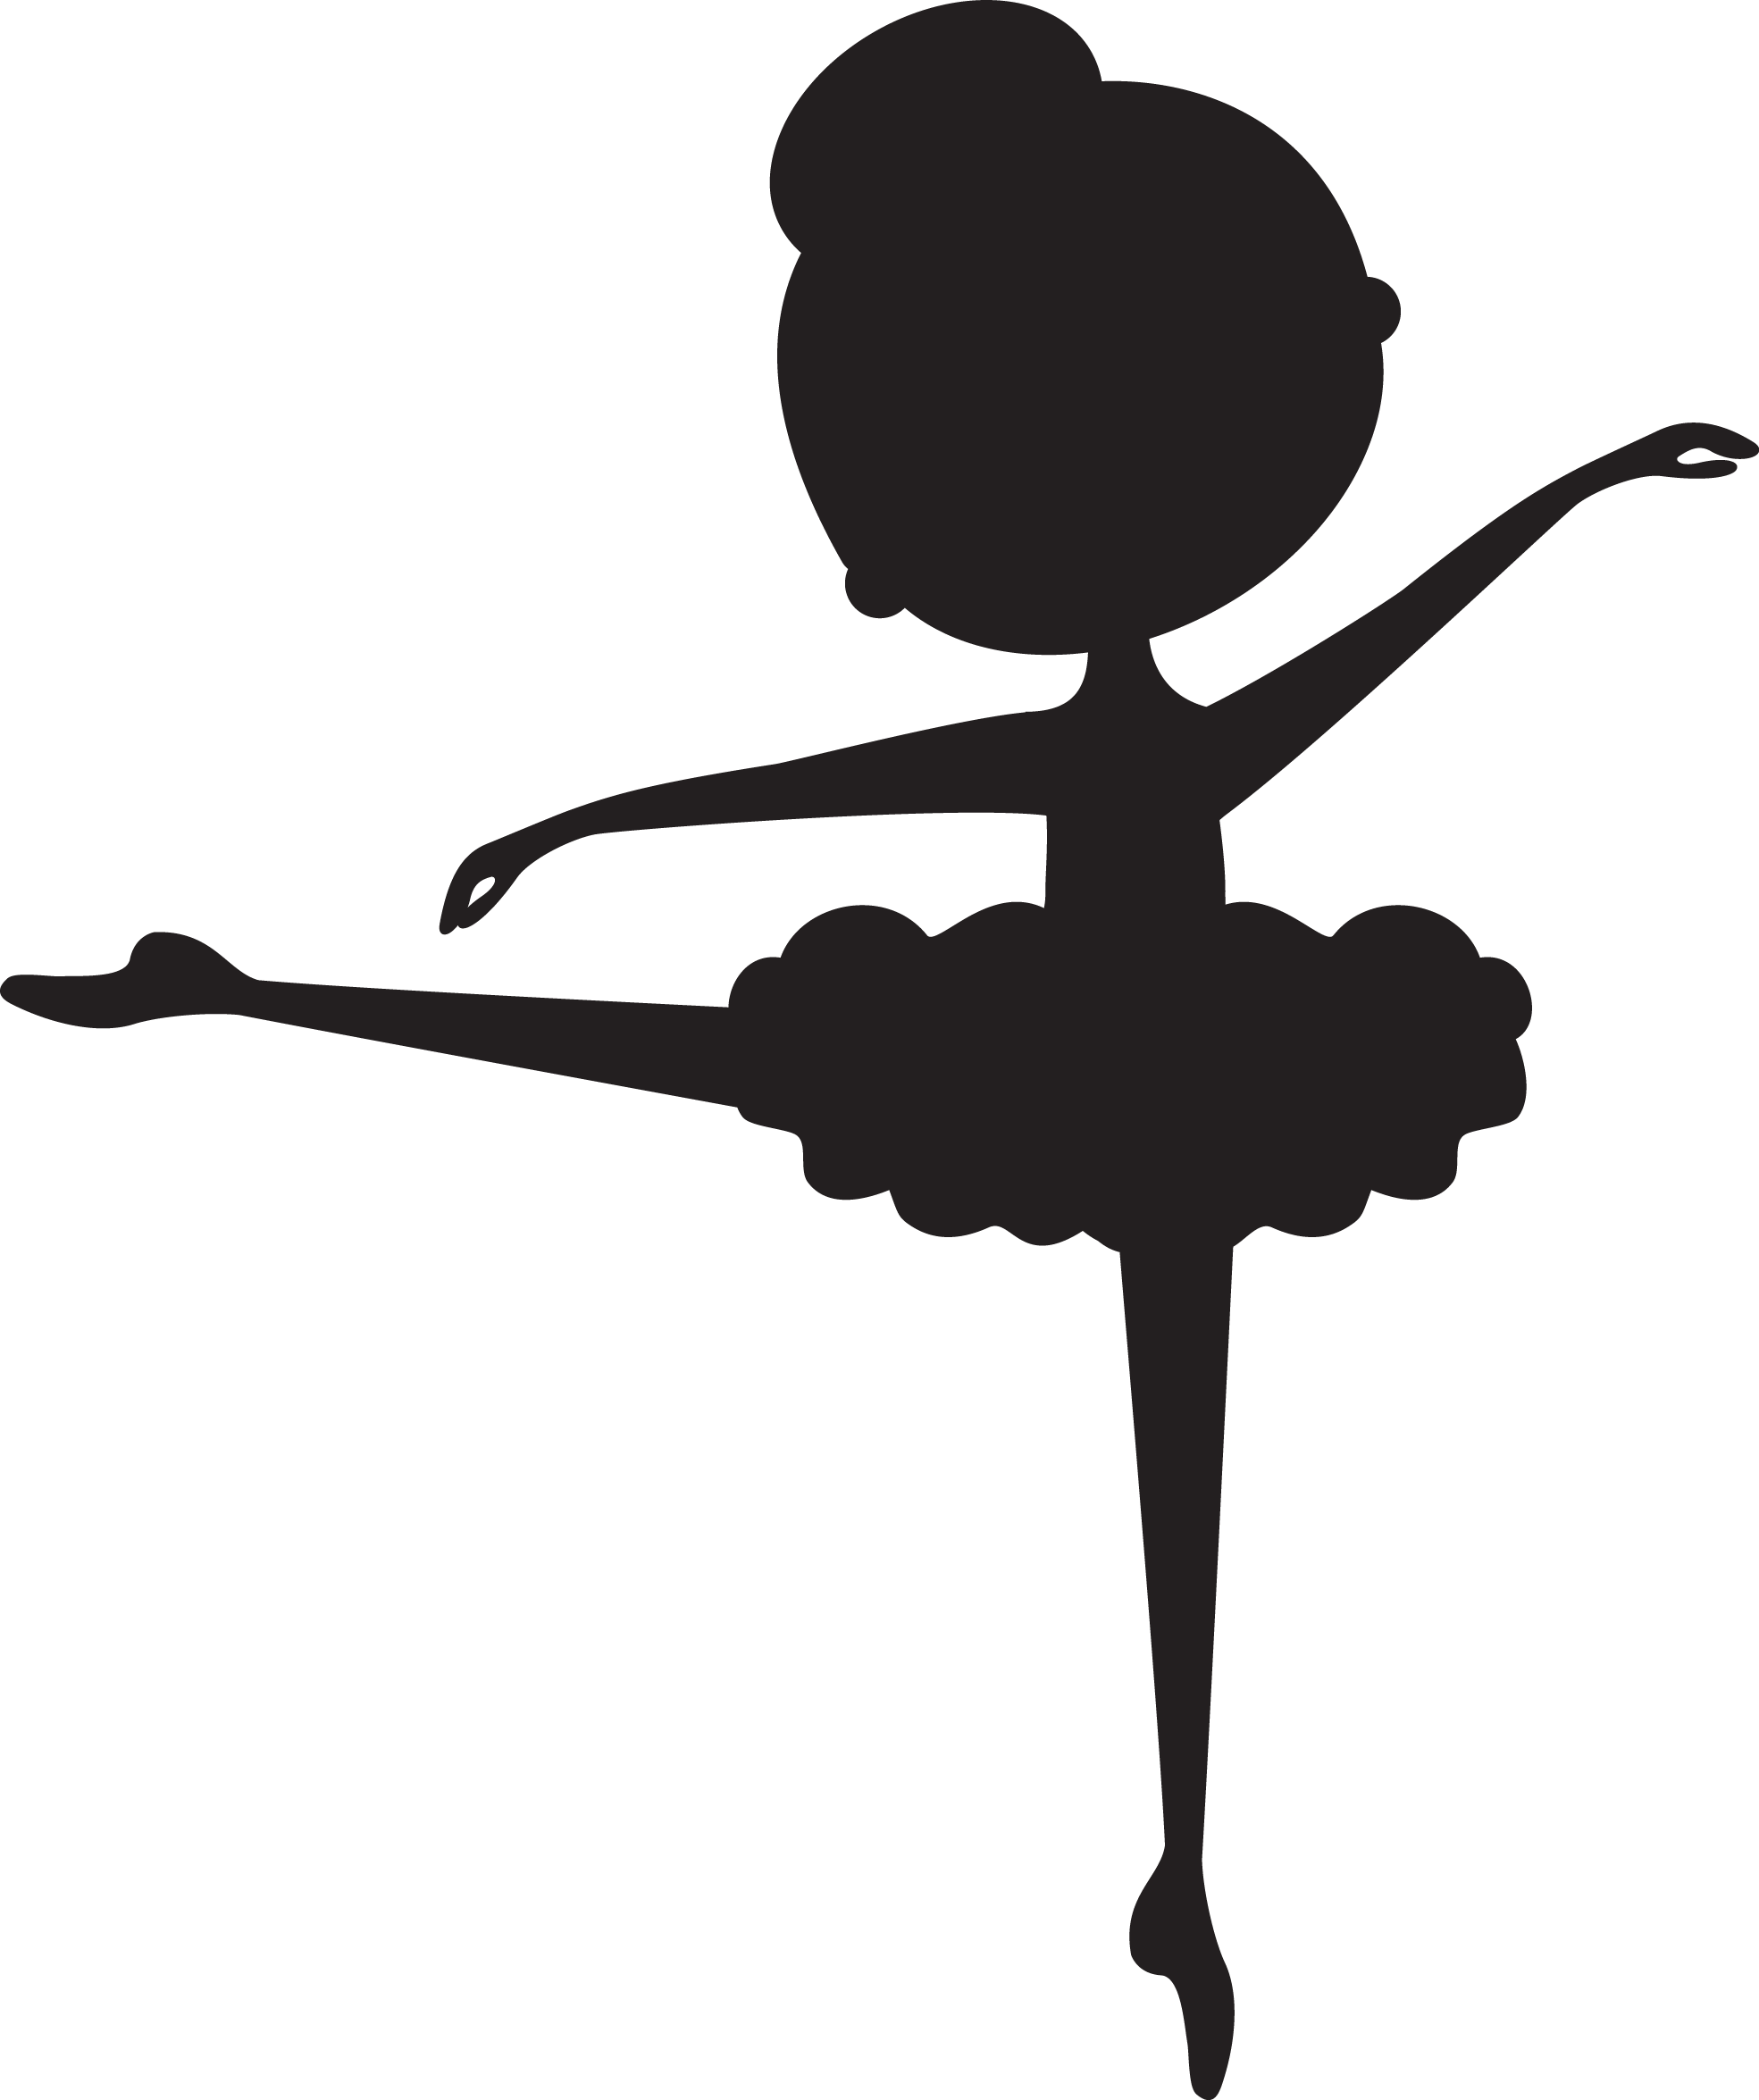 14 cliparts for free. Download Ballet clipart public domain and use.